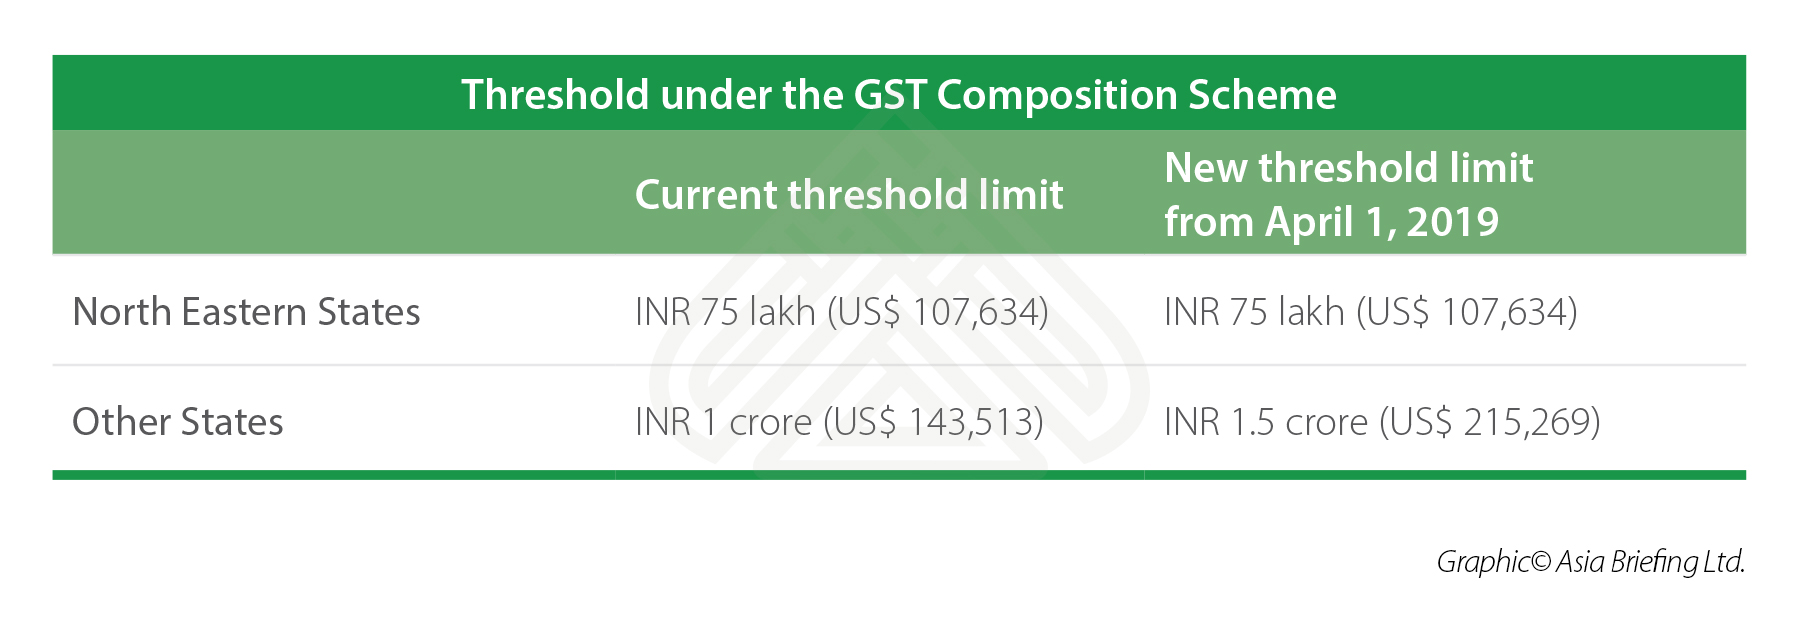 GST Composition Scheme for SMEs in India - India Briefing News